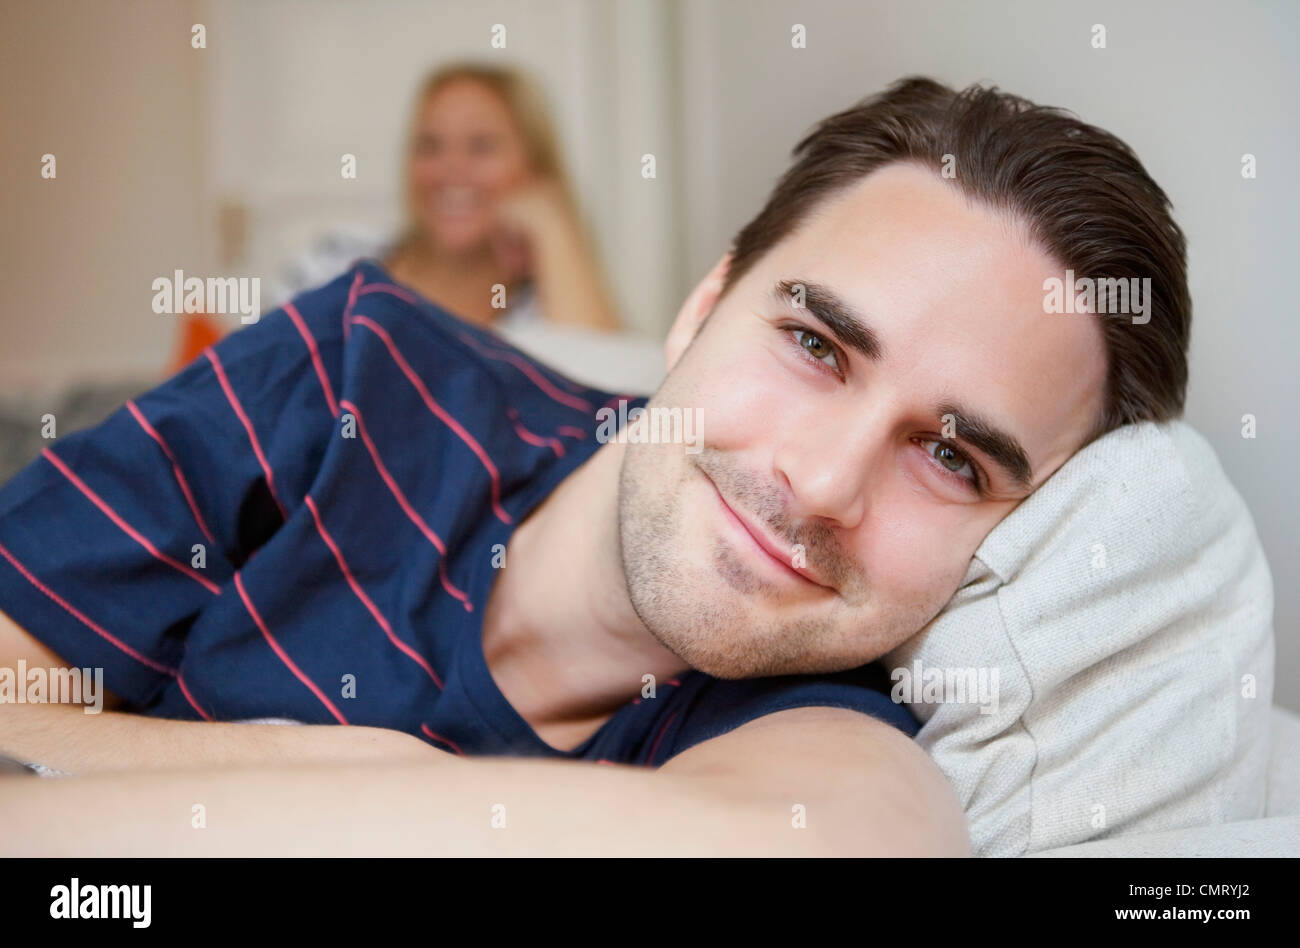 Man relaxing - Stock Image